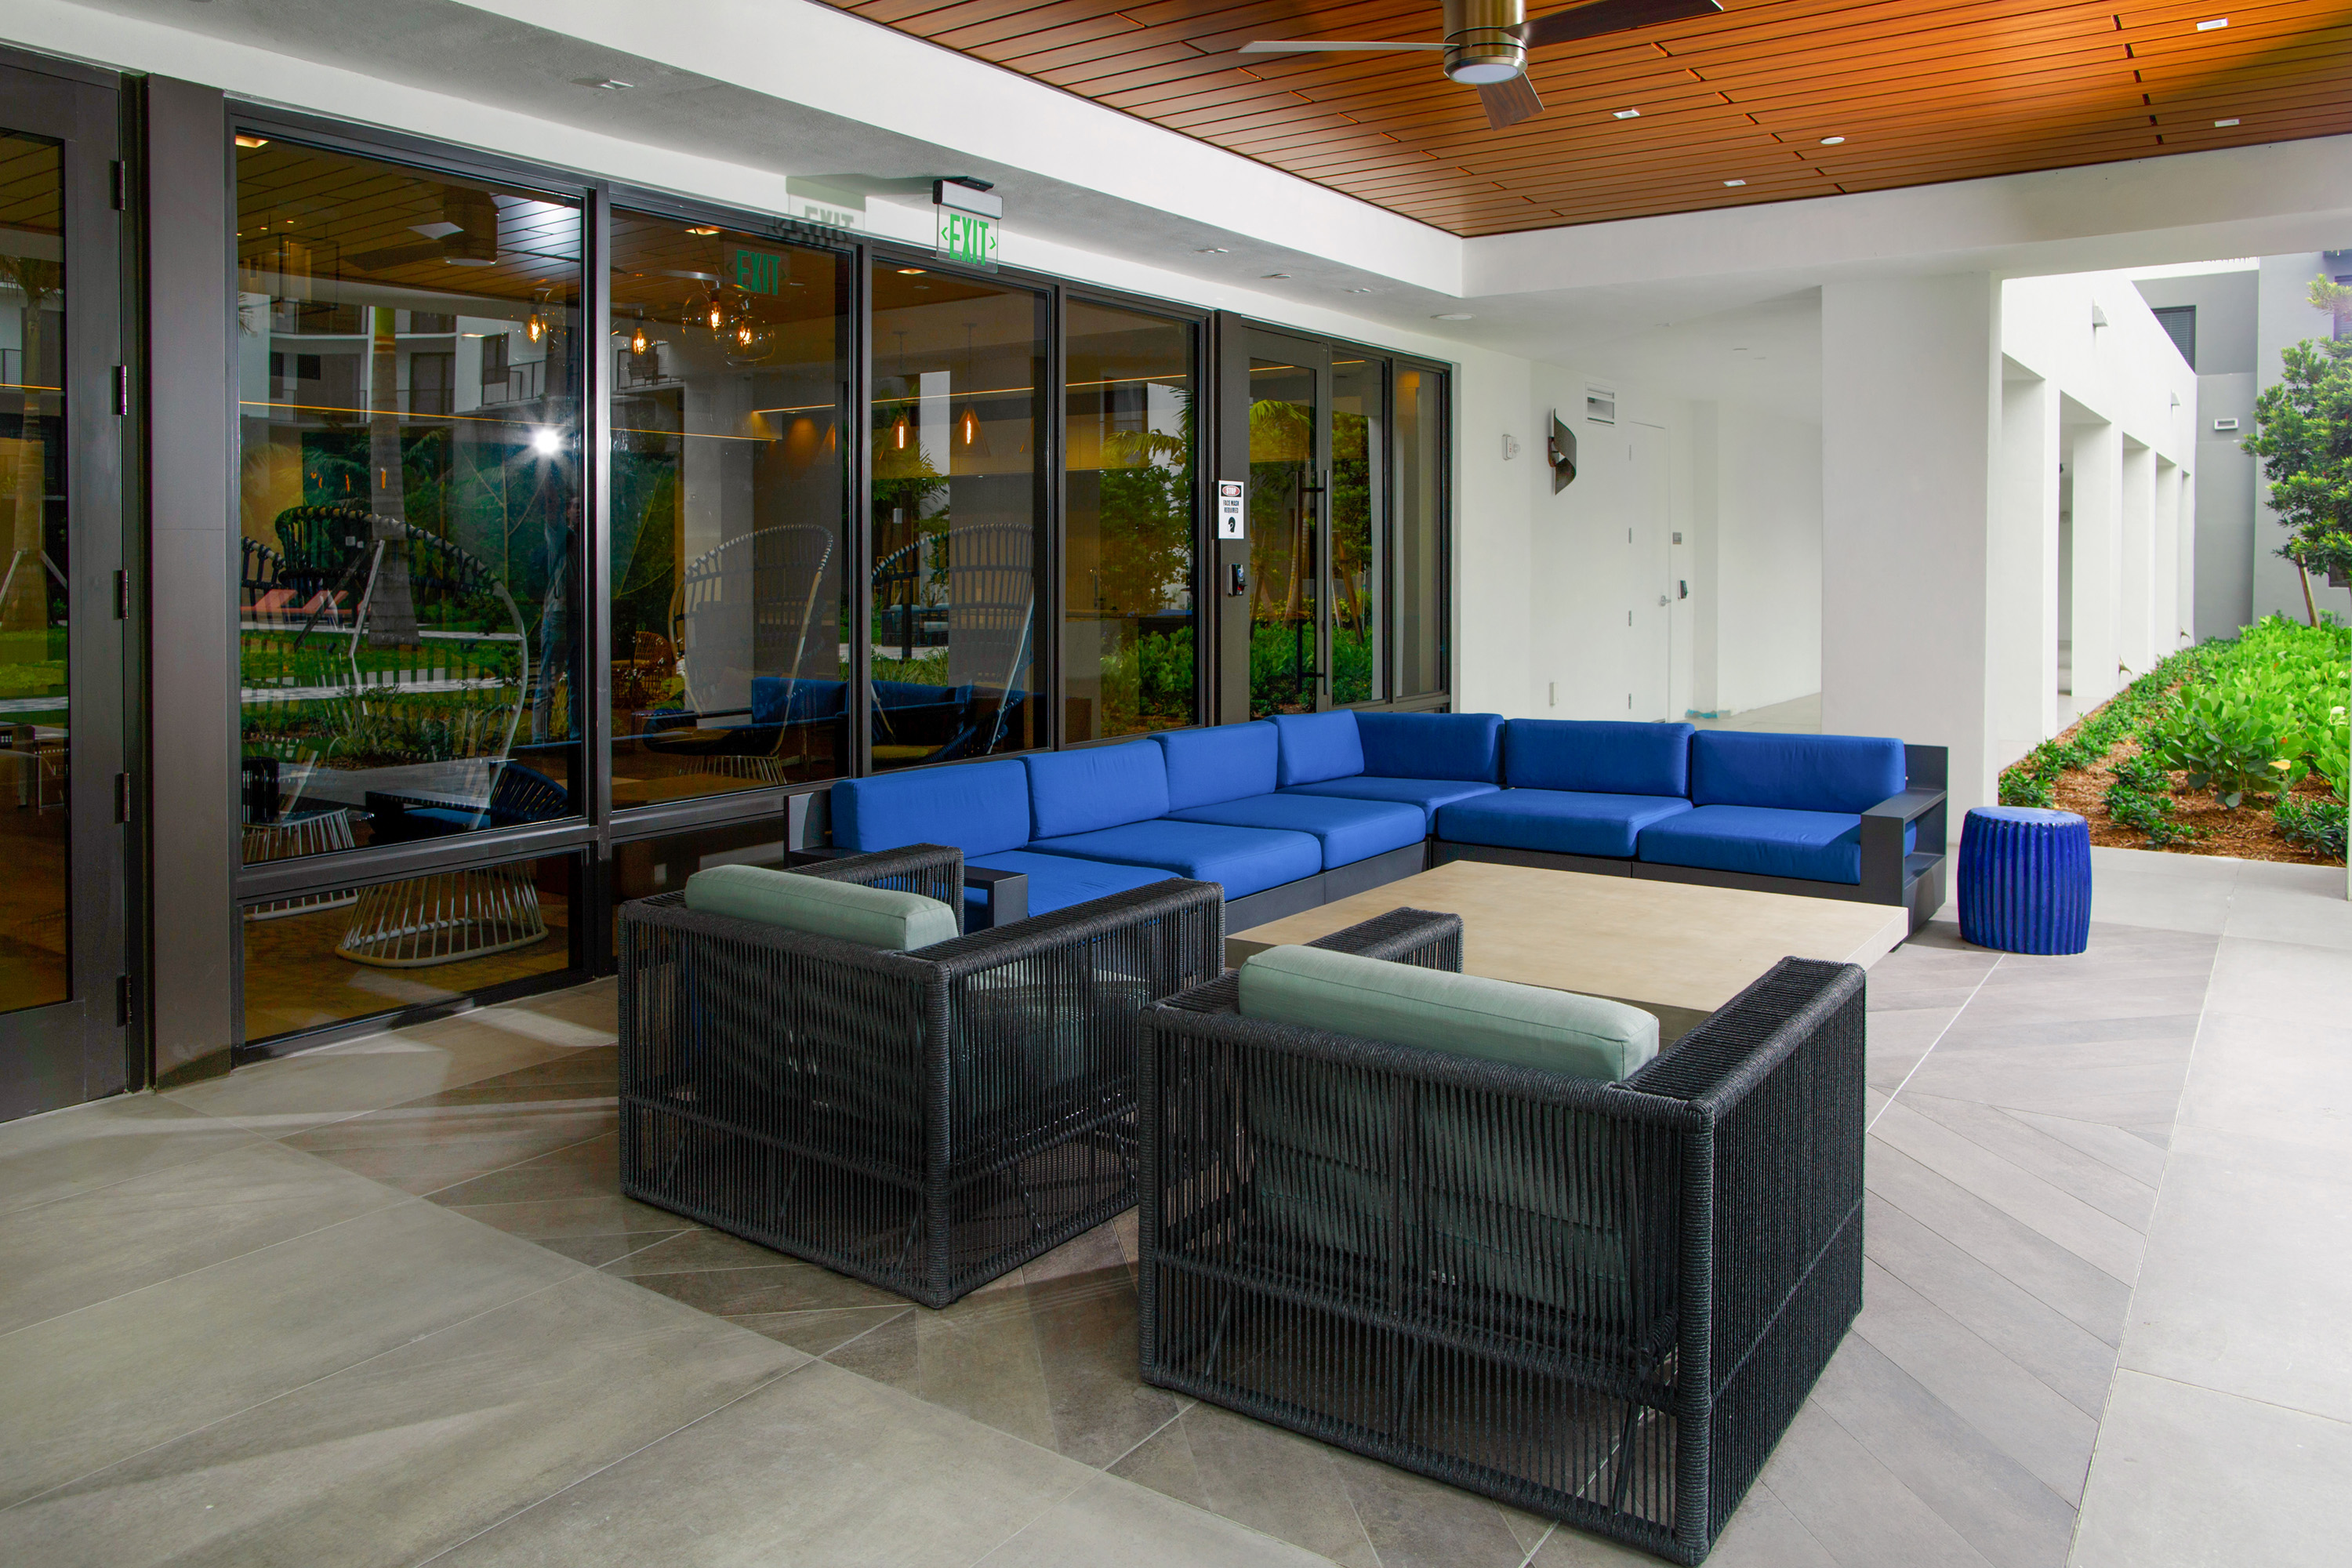 Large lounge outdoor area